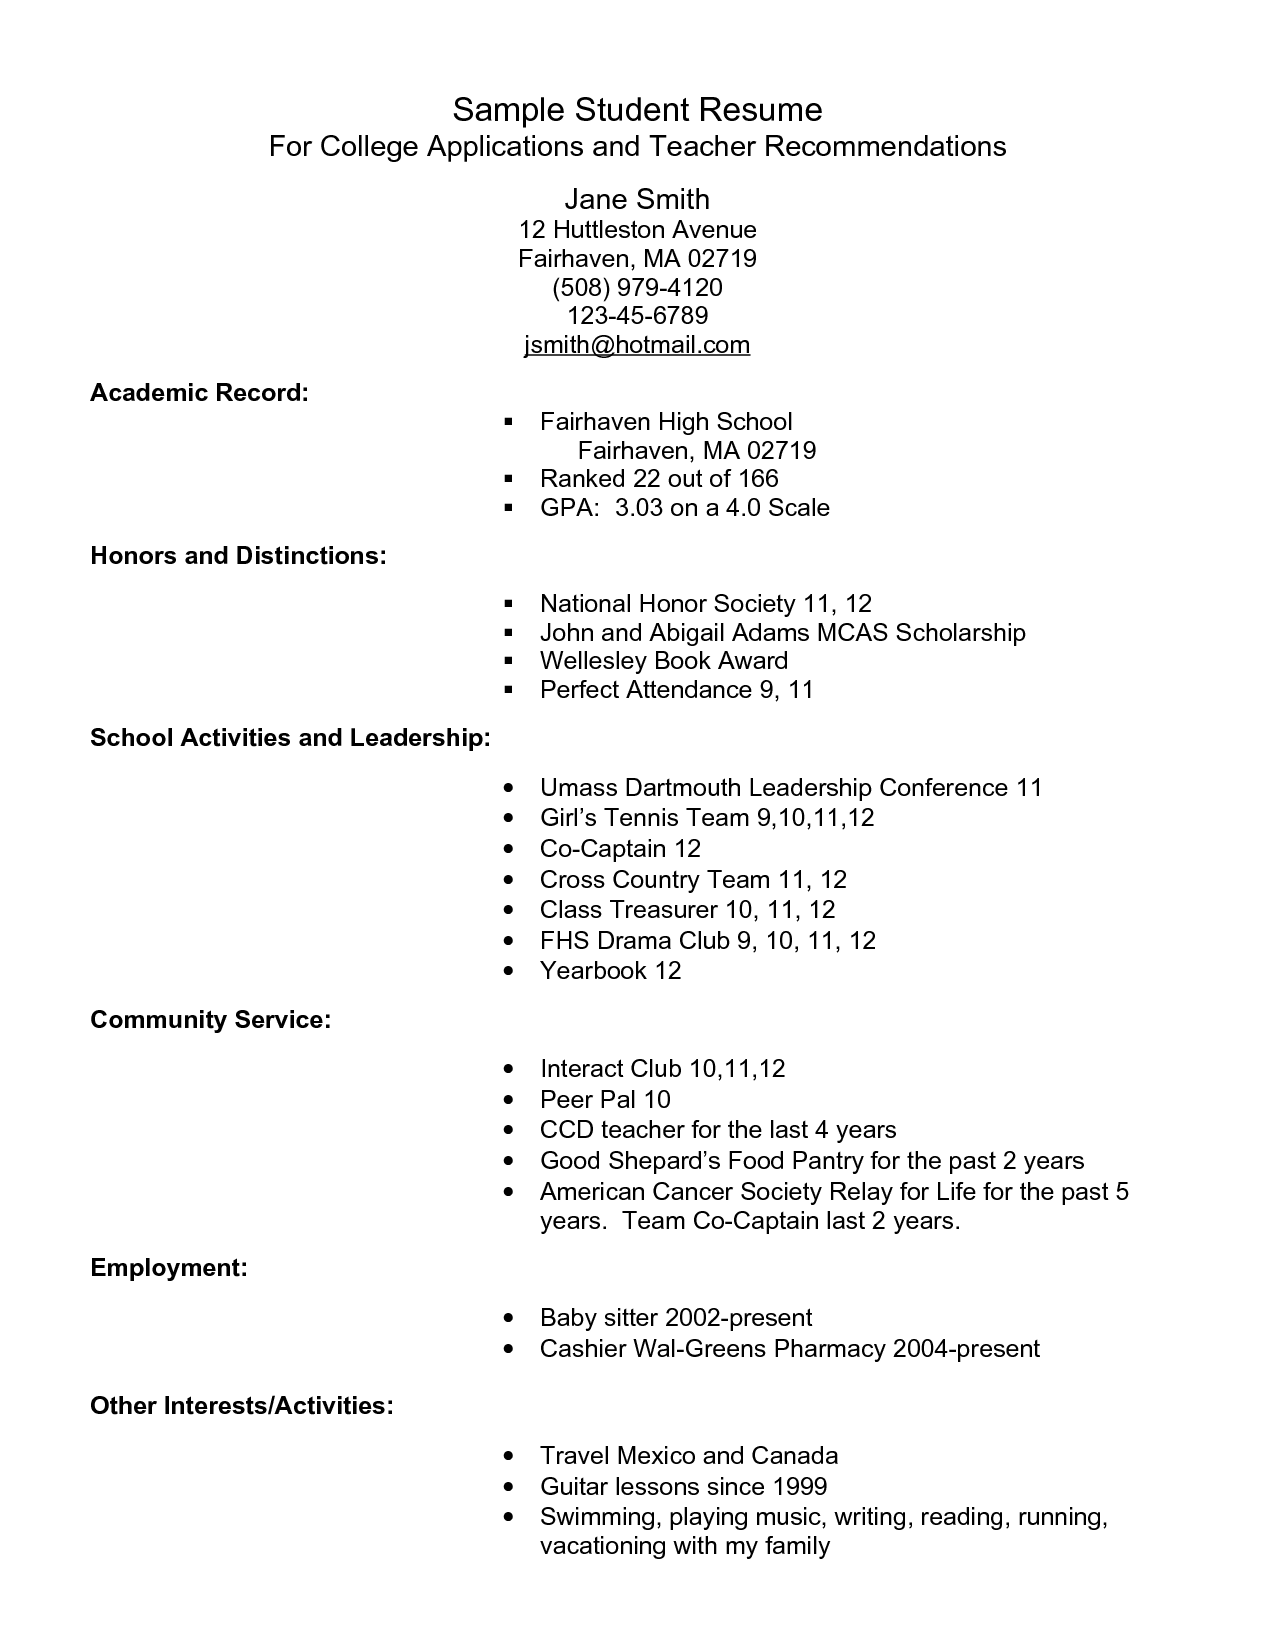 Resume Template For High School Student Example Resume For High School Students For College Applications